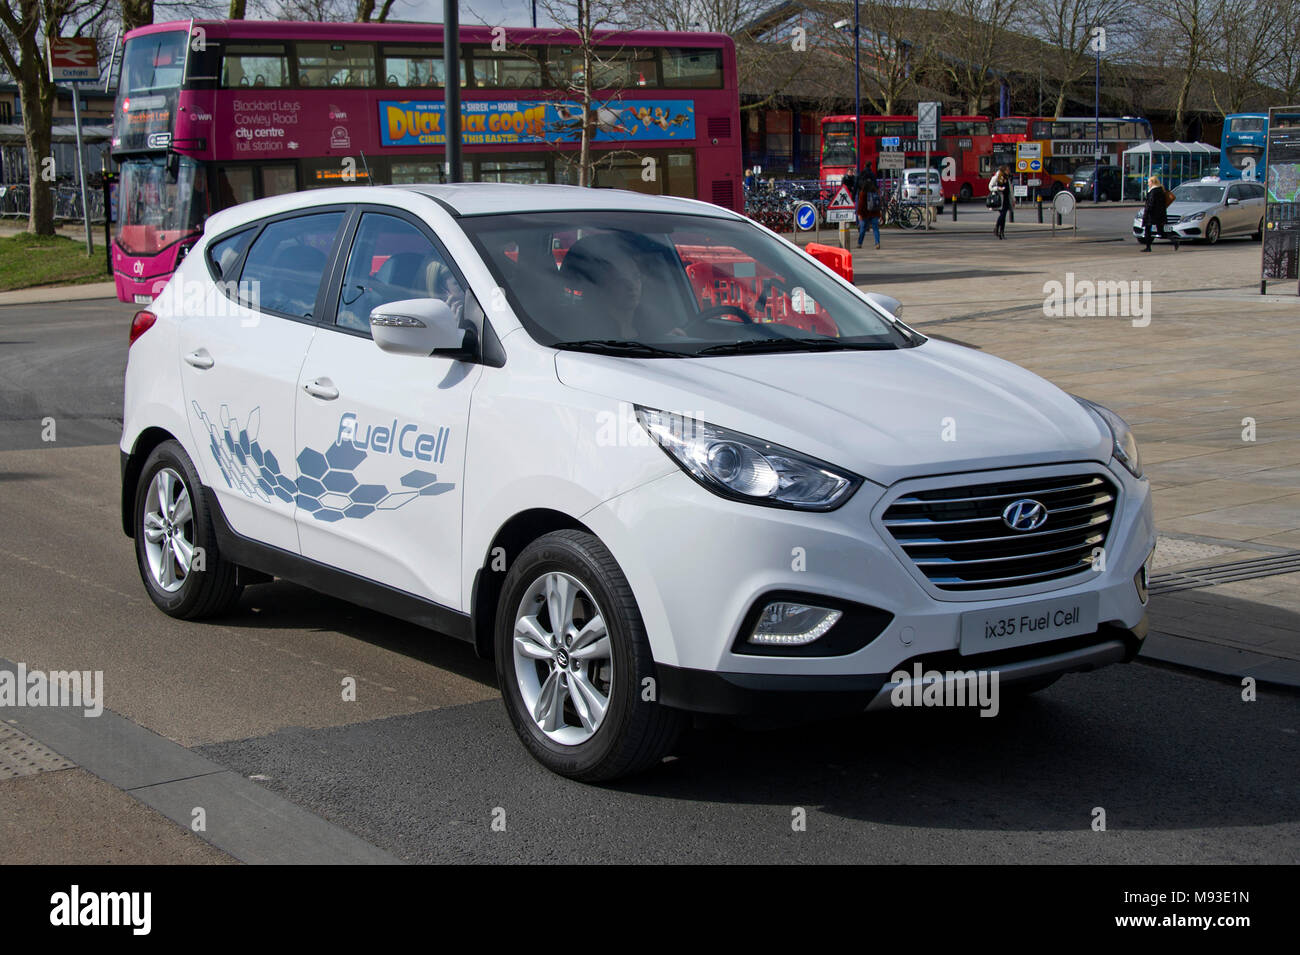 Hyundai ix35 Hydrogen Fuel Cell Vehicle, the world's first